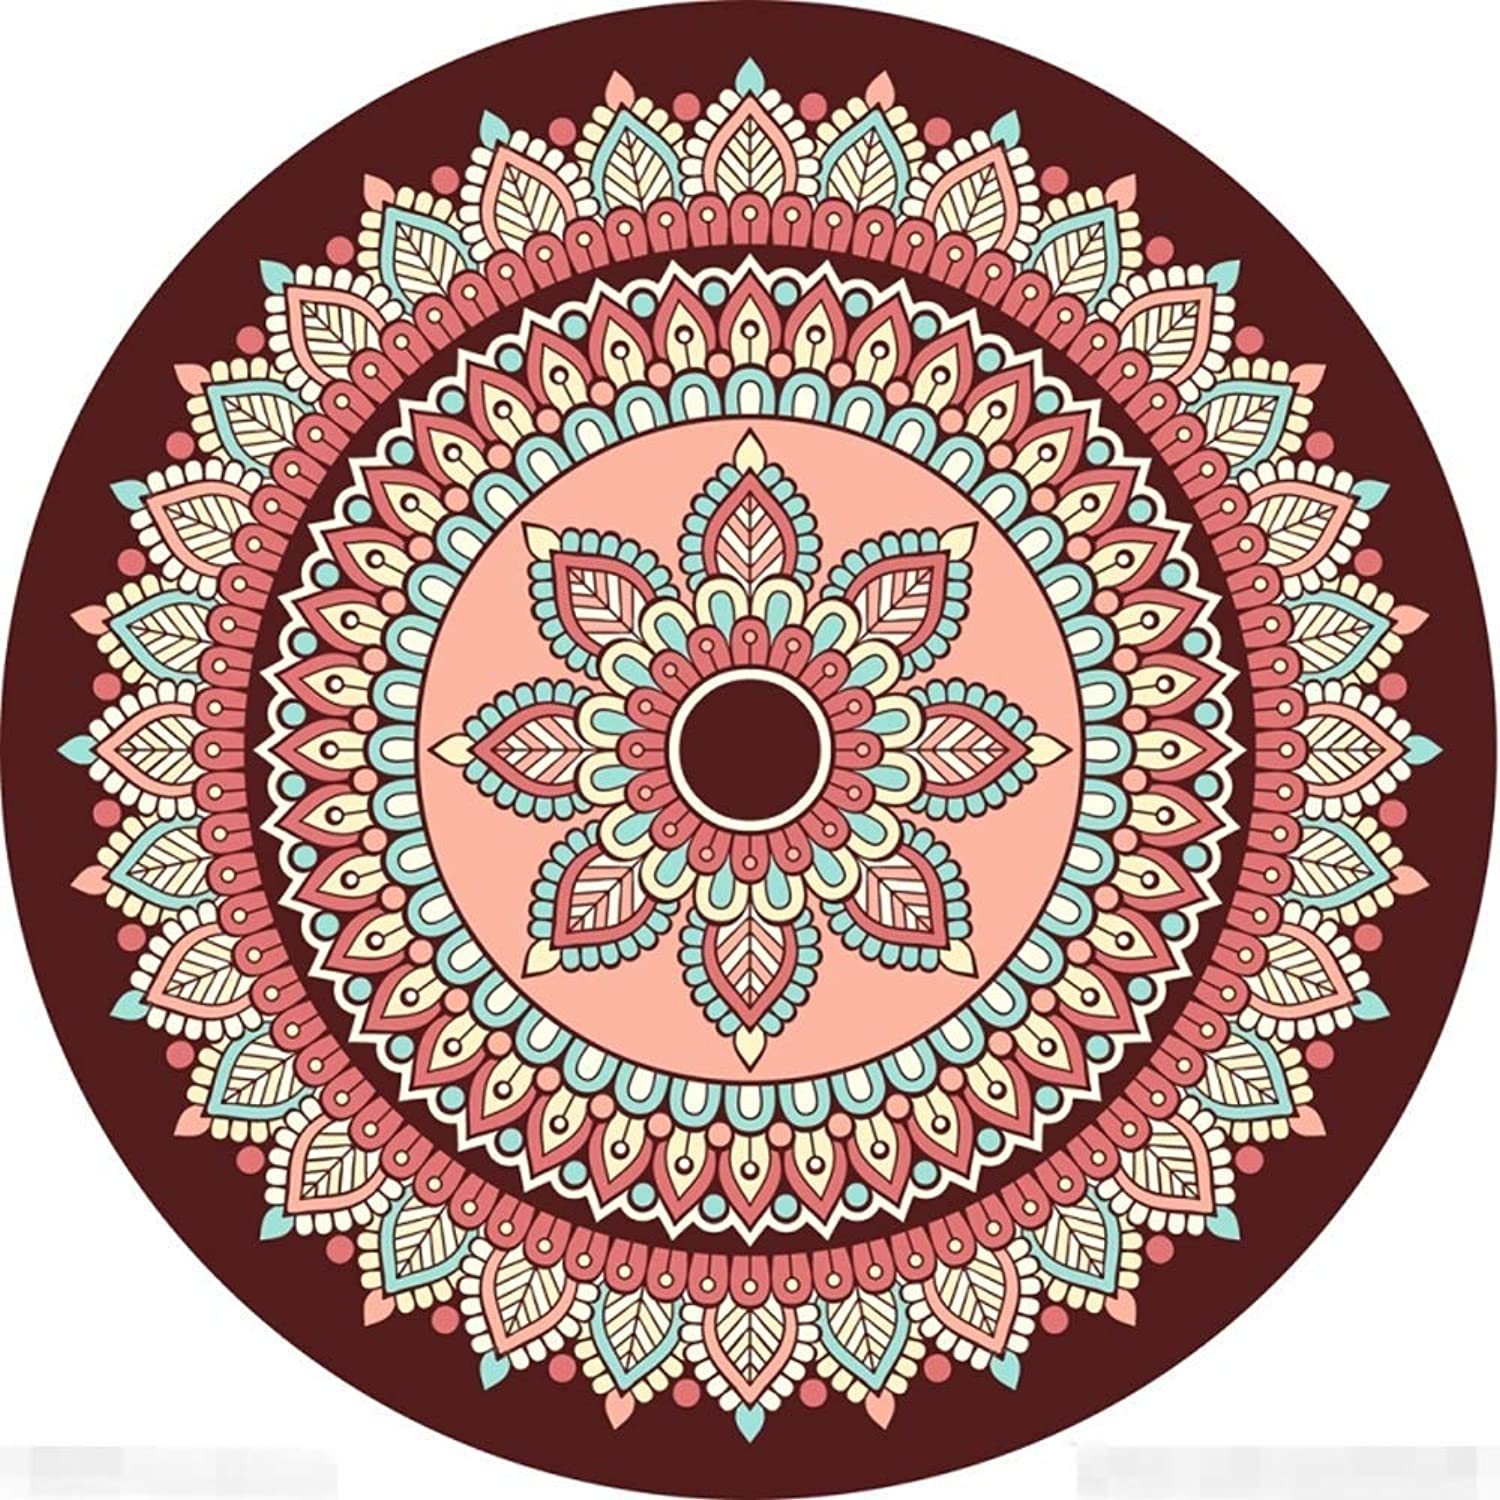 Royare Home Decorations mat 3D Round Carpet Washable Non-Slip Rugs Personality Ethnic Wind Floor Pad Bedroom Bedside Mat Cafe Bedroom Mat Yoga Mat (Size   160  160cm 62.99  62.99in)